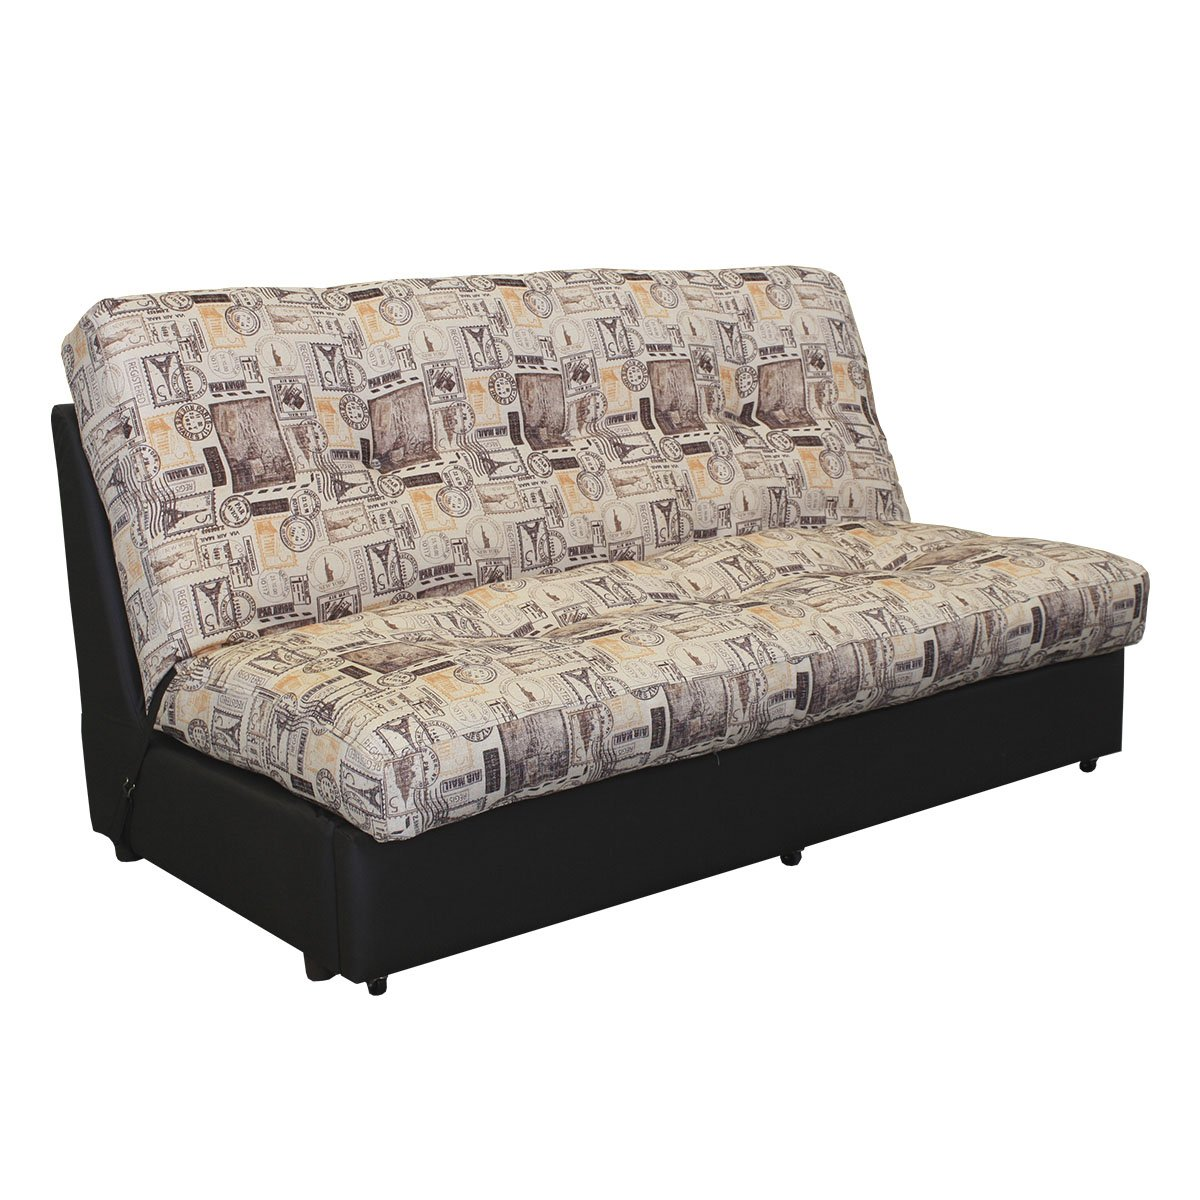 Sofa cama sofas camas sofa brownsvilleclaimhelp thesofa for Sofa cama opiniones